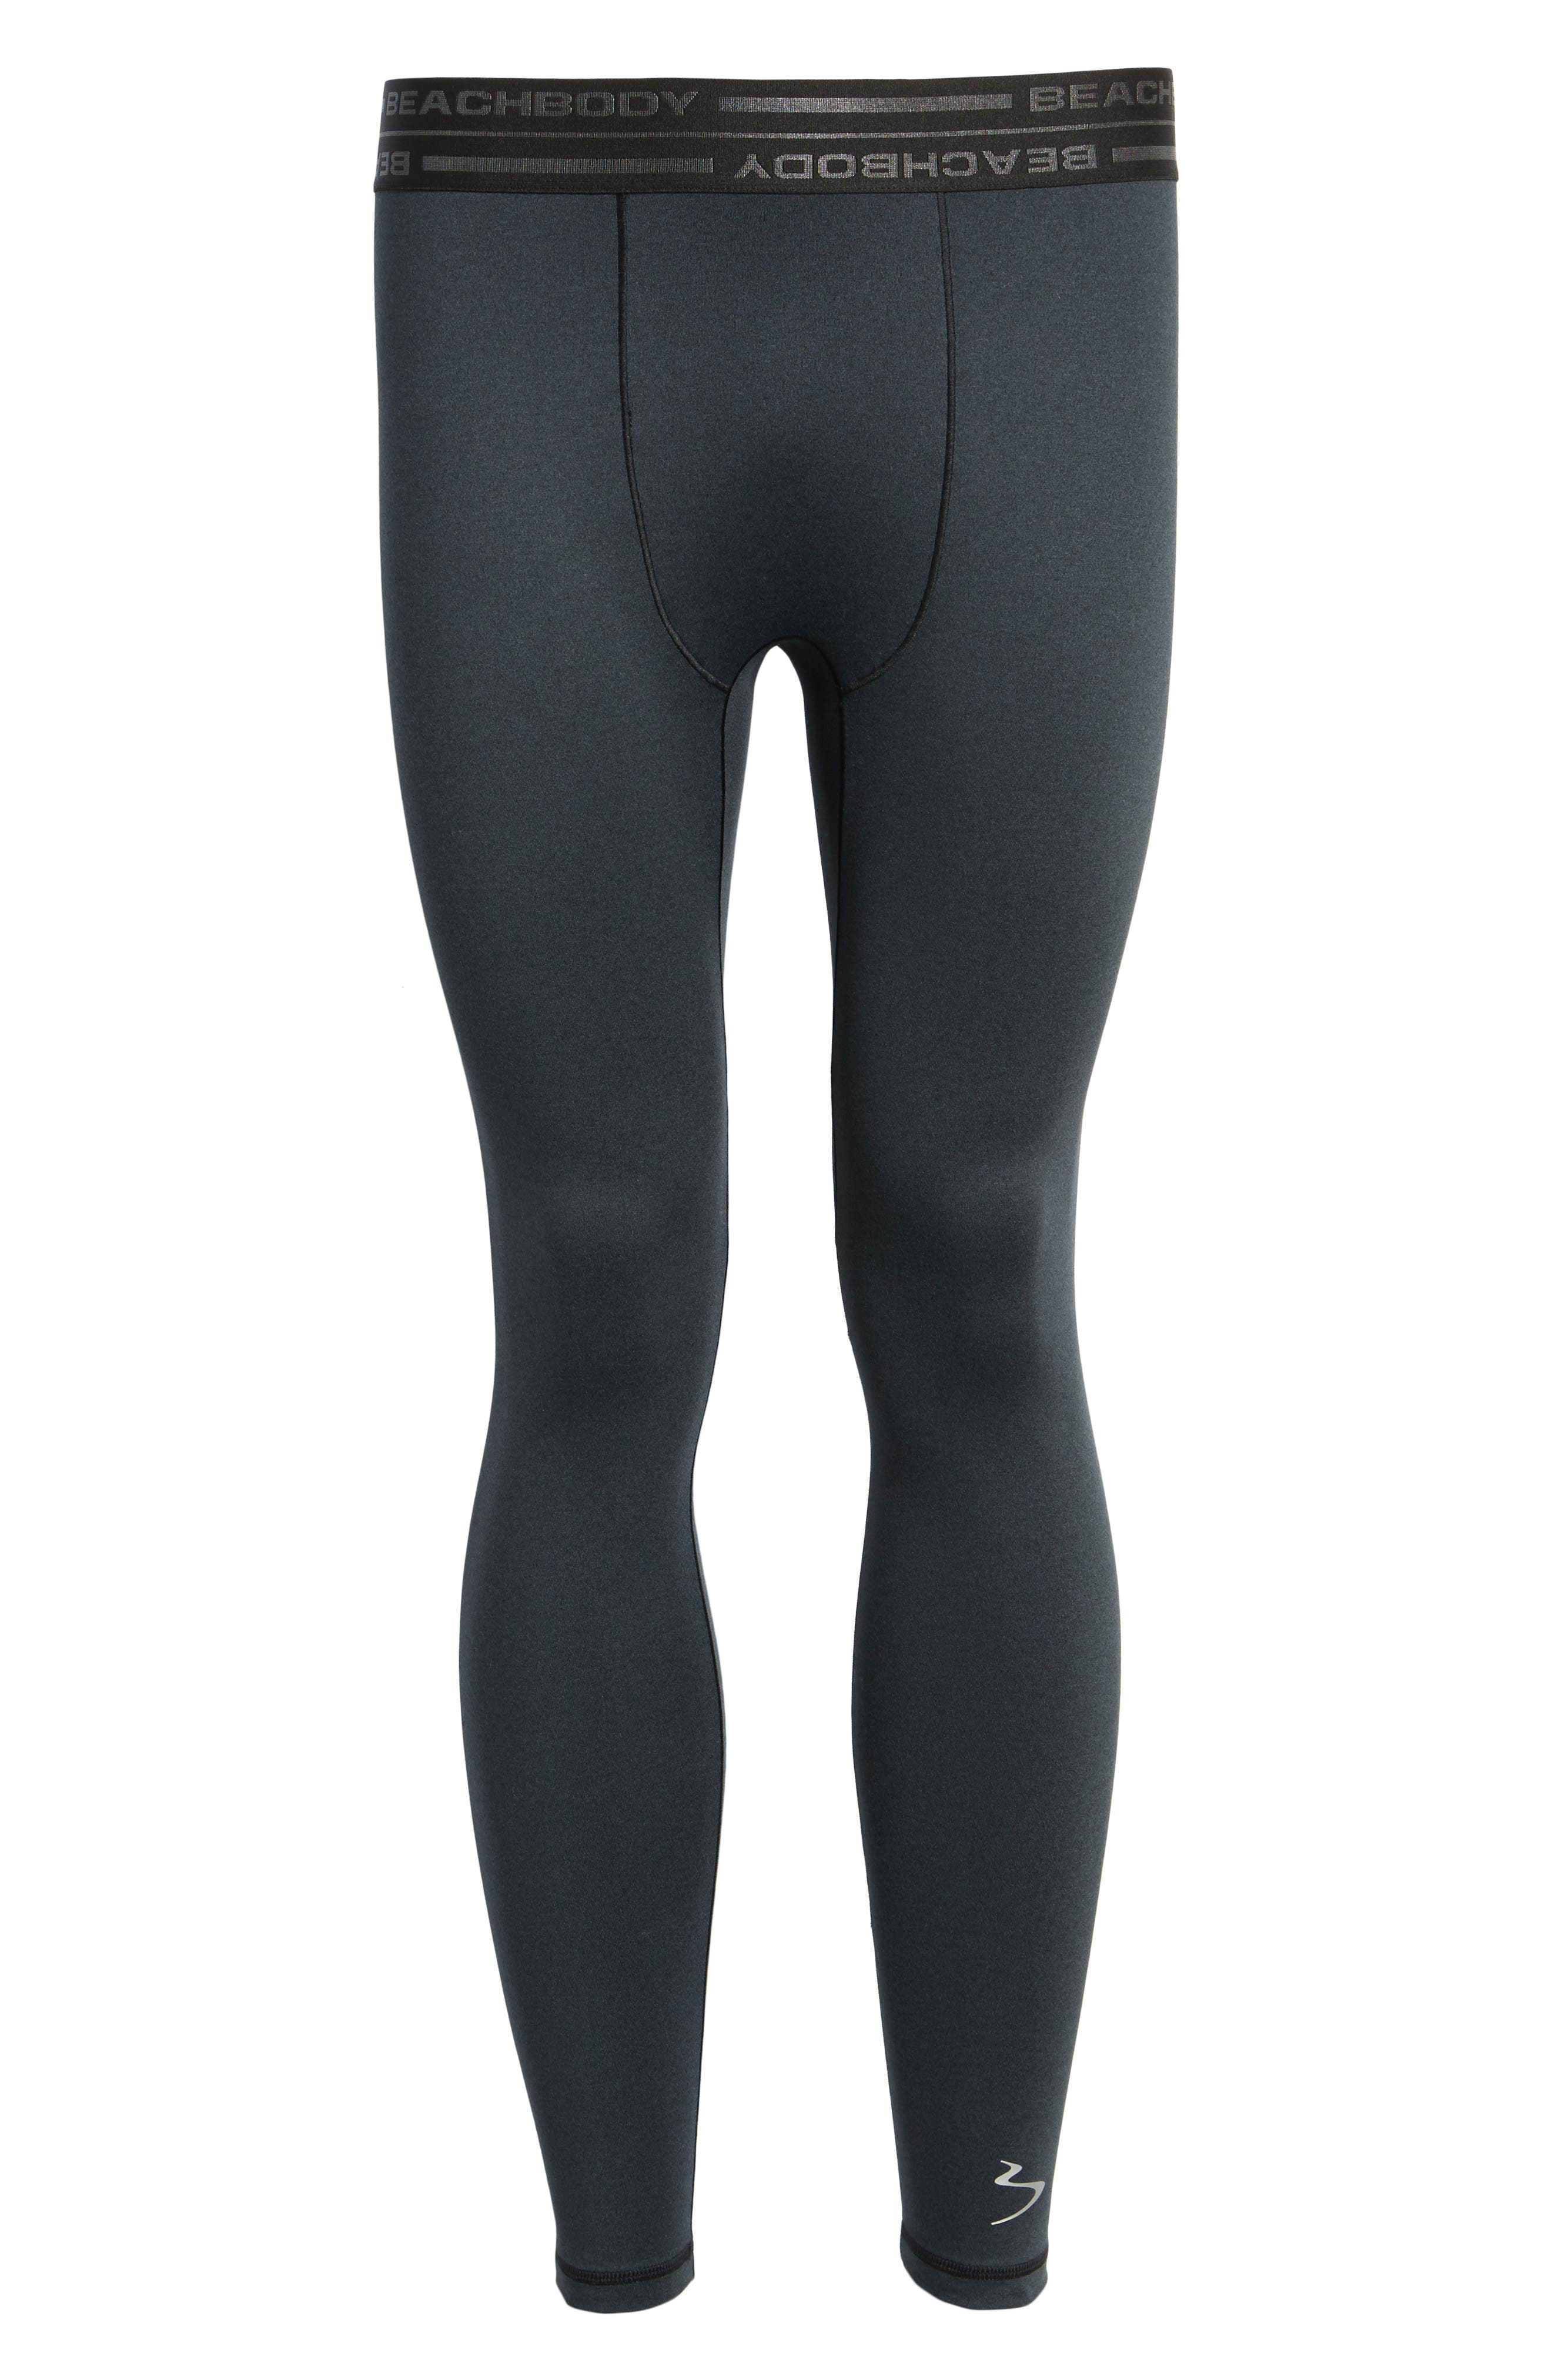 Energy Tights,                             Alternate thumbnail 6, color,                             001